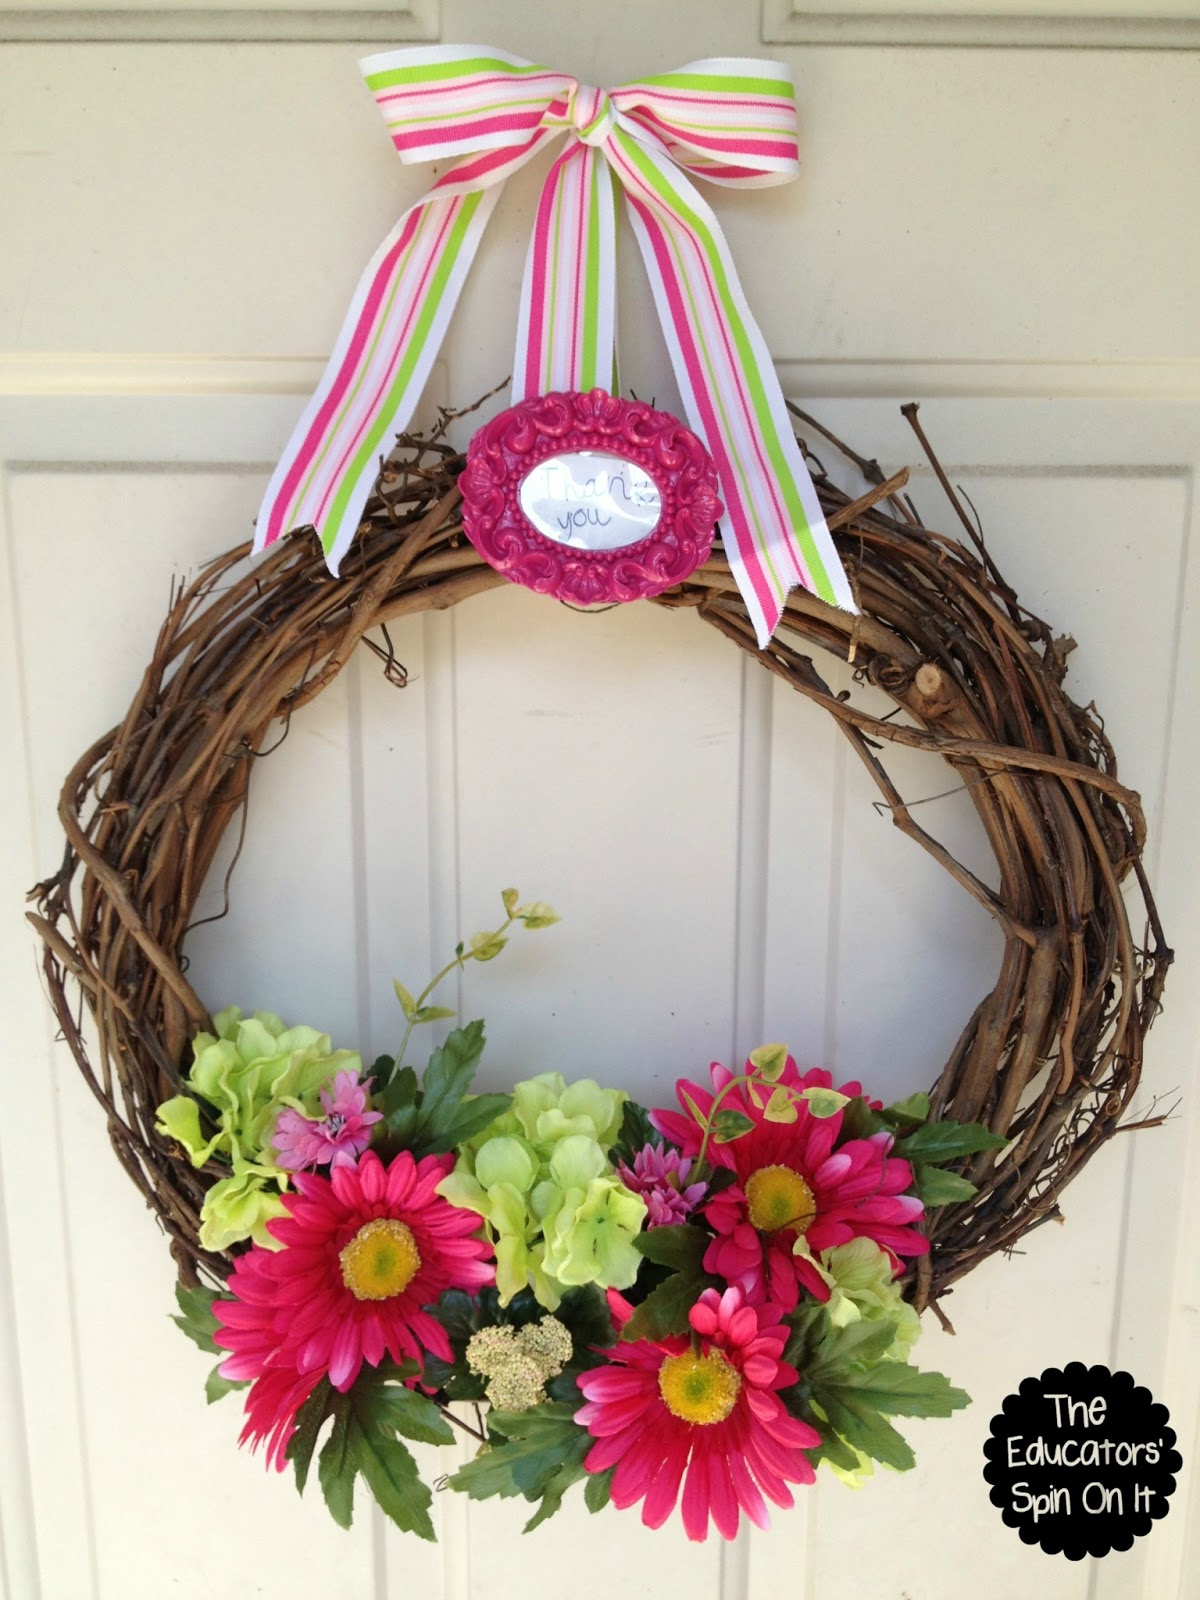 Classroom Wreath Ideas ~ Teacher appreciation gift ideas the educators spin on it